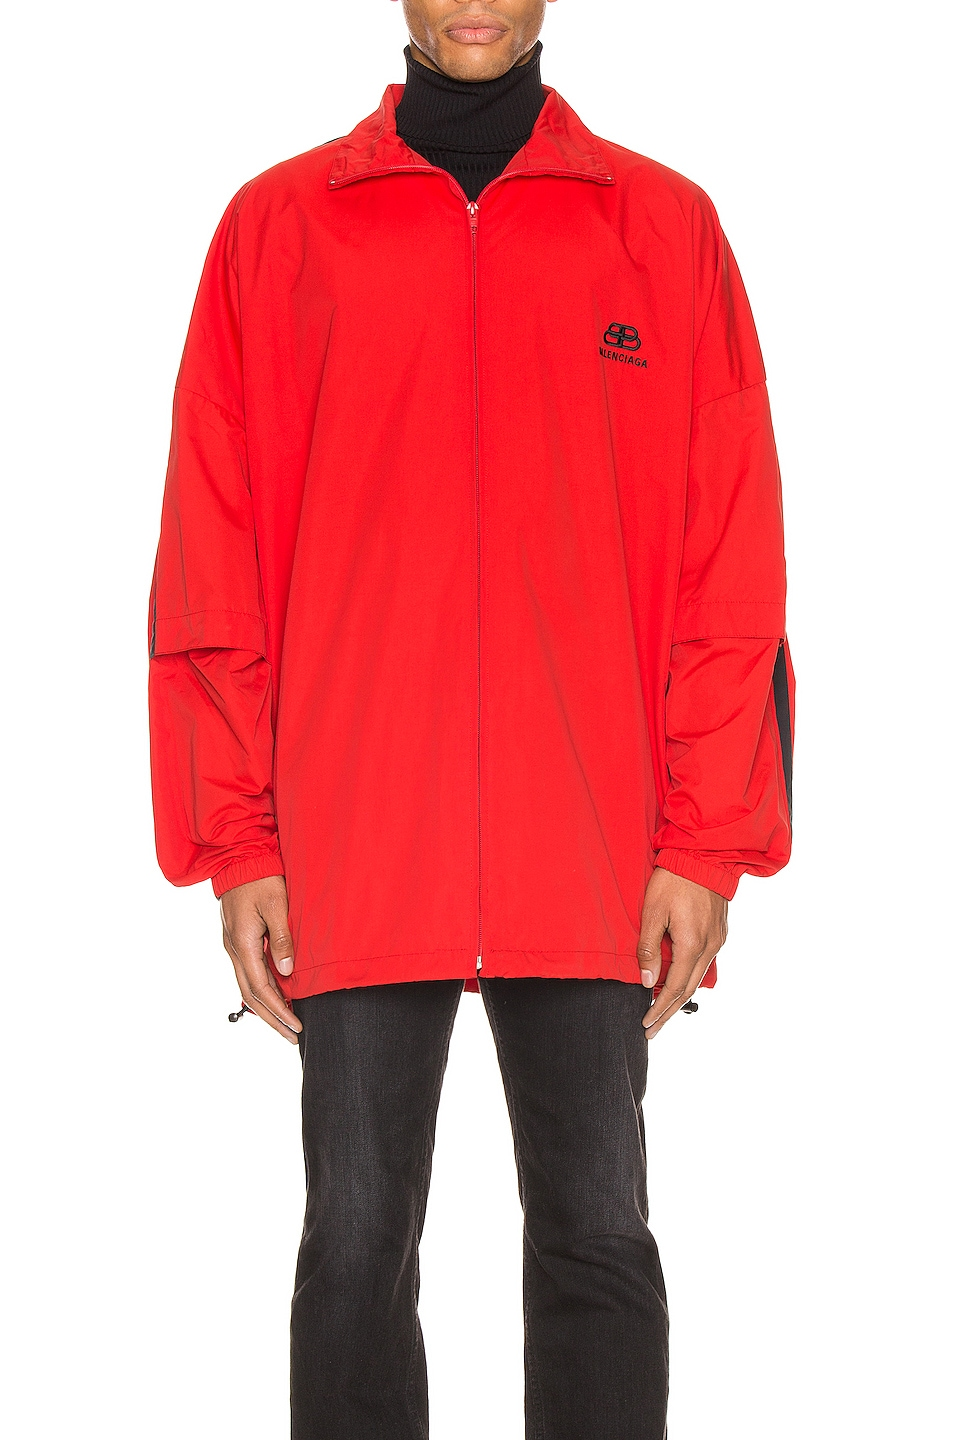 Image 1 of Balenciaga Double Sleeve Zip Up in Masai Red